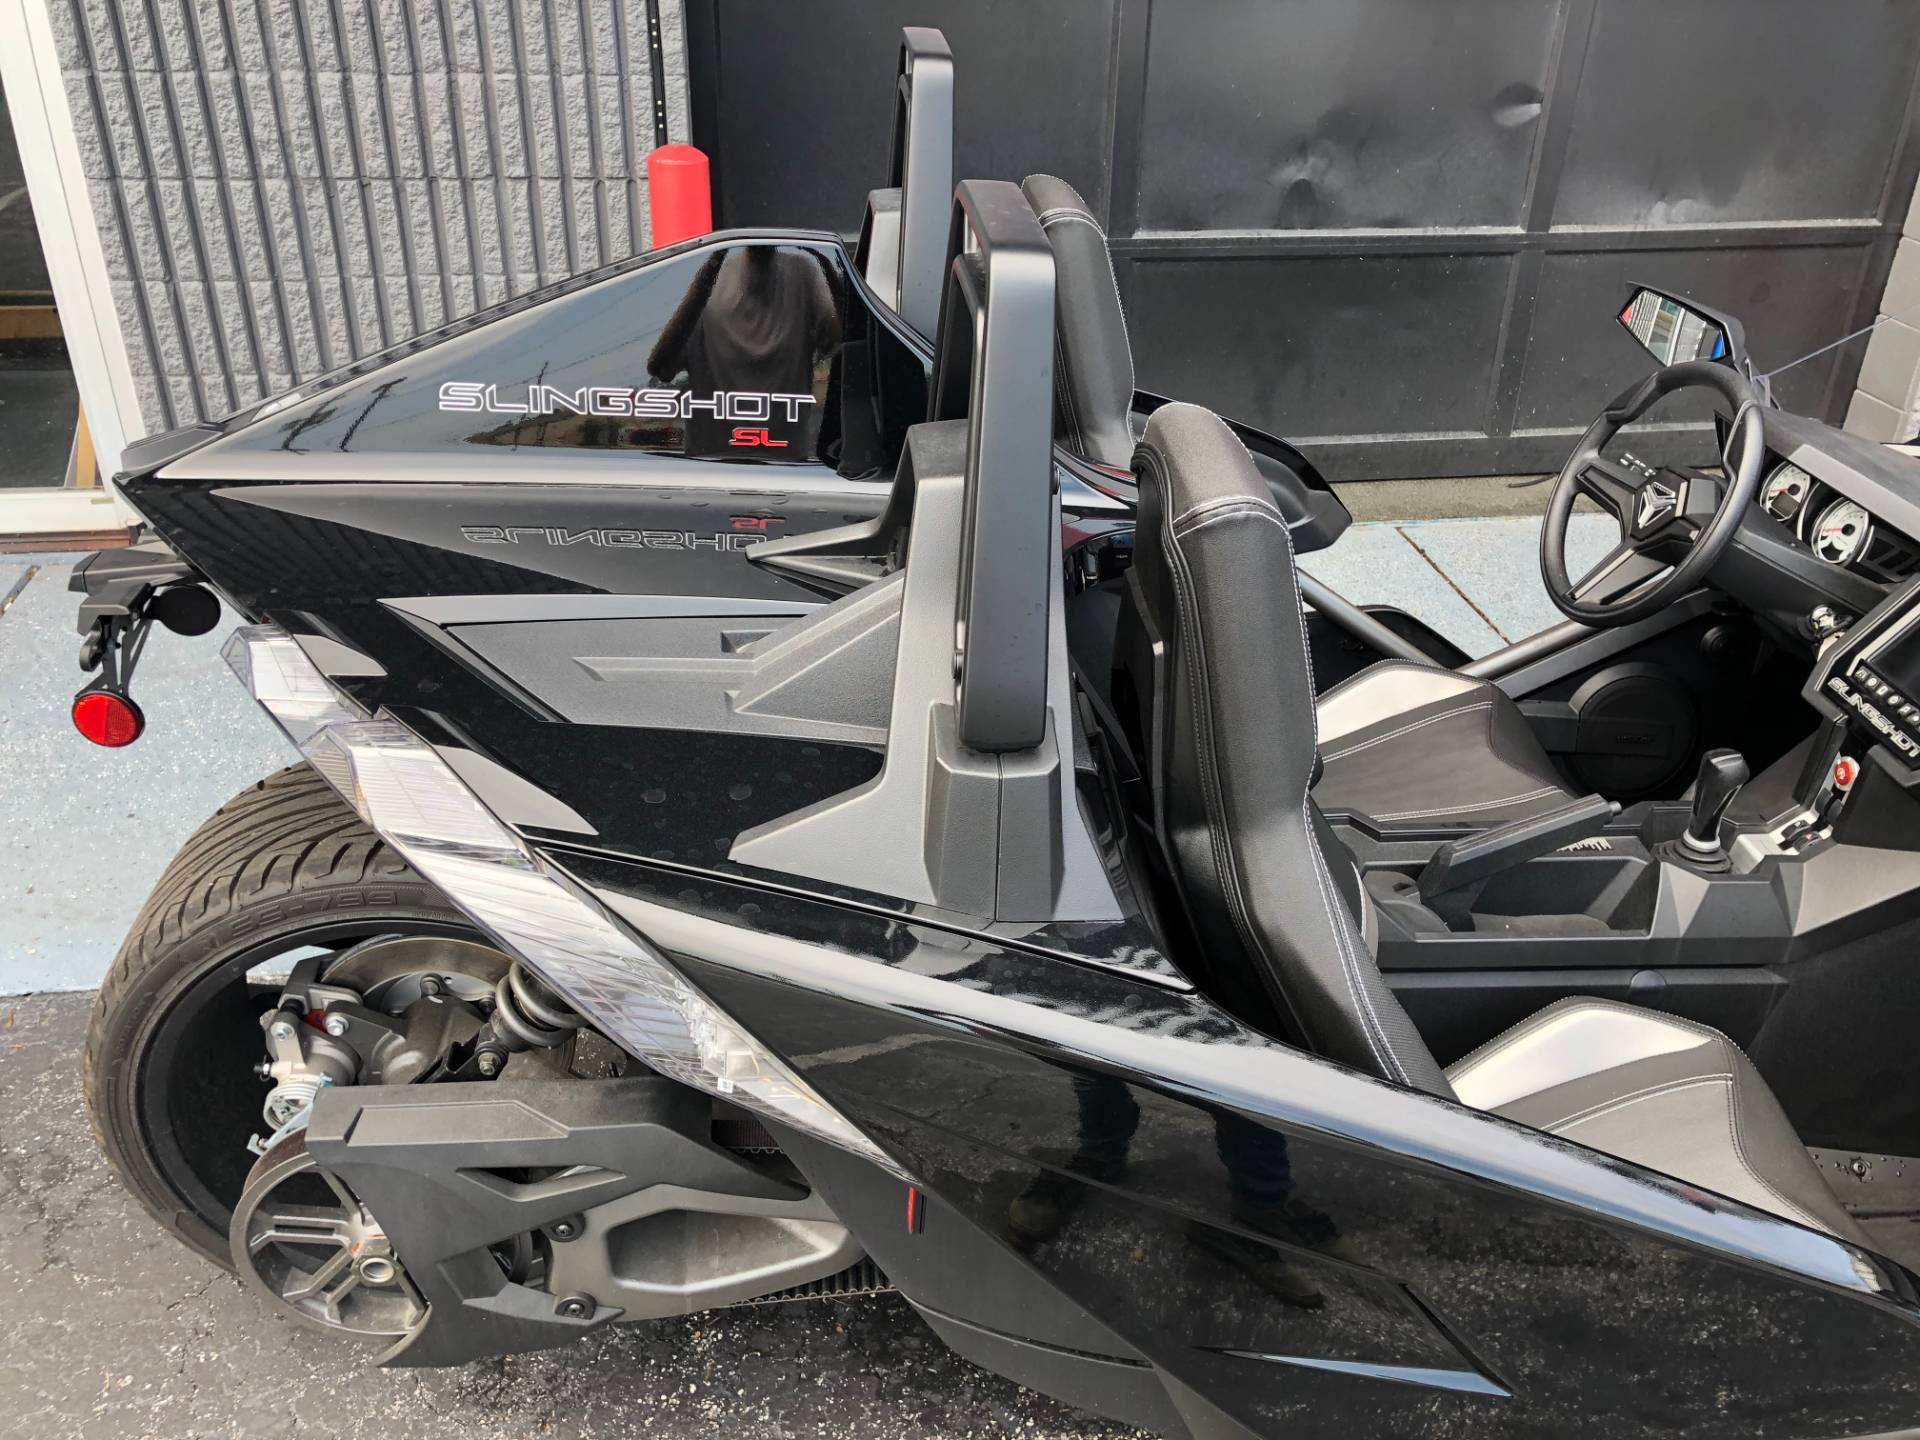 2019 Polaris Slingshot SL in Pinellas Park, Florida - Photo 10